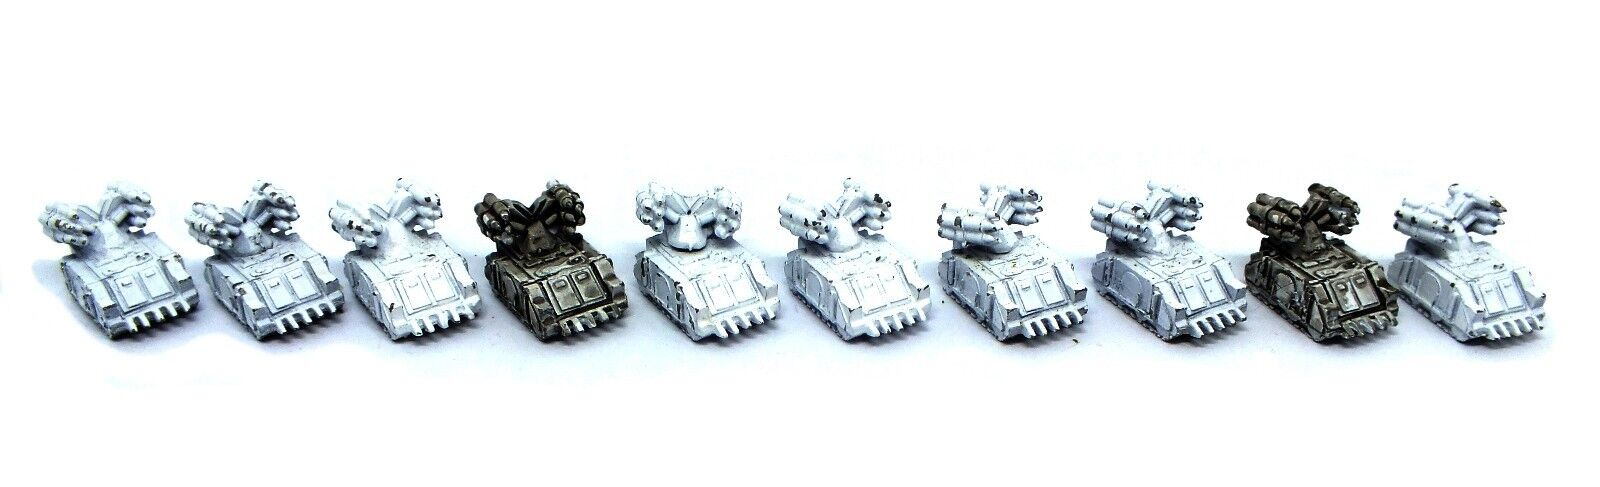 EPOS - Imperial Guard Whirlwind Multi Launcher - (Type 2) - 6mm